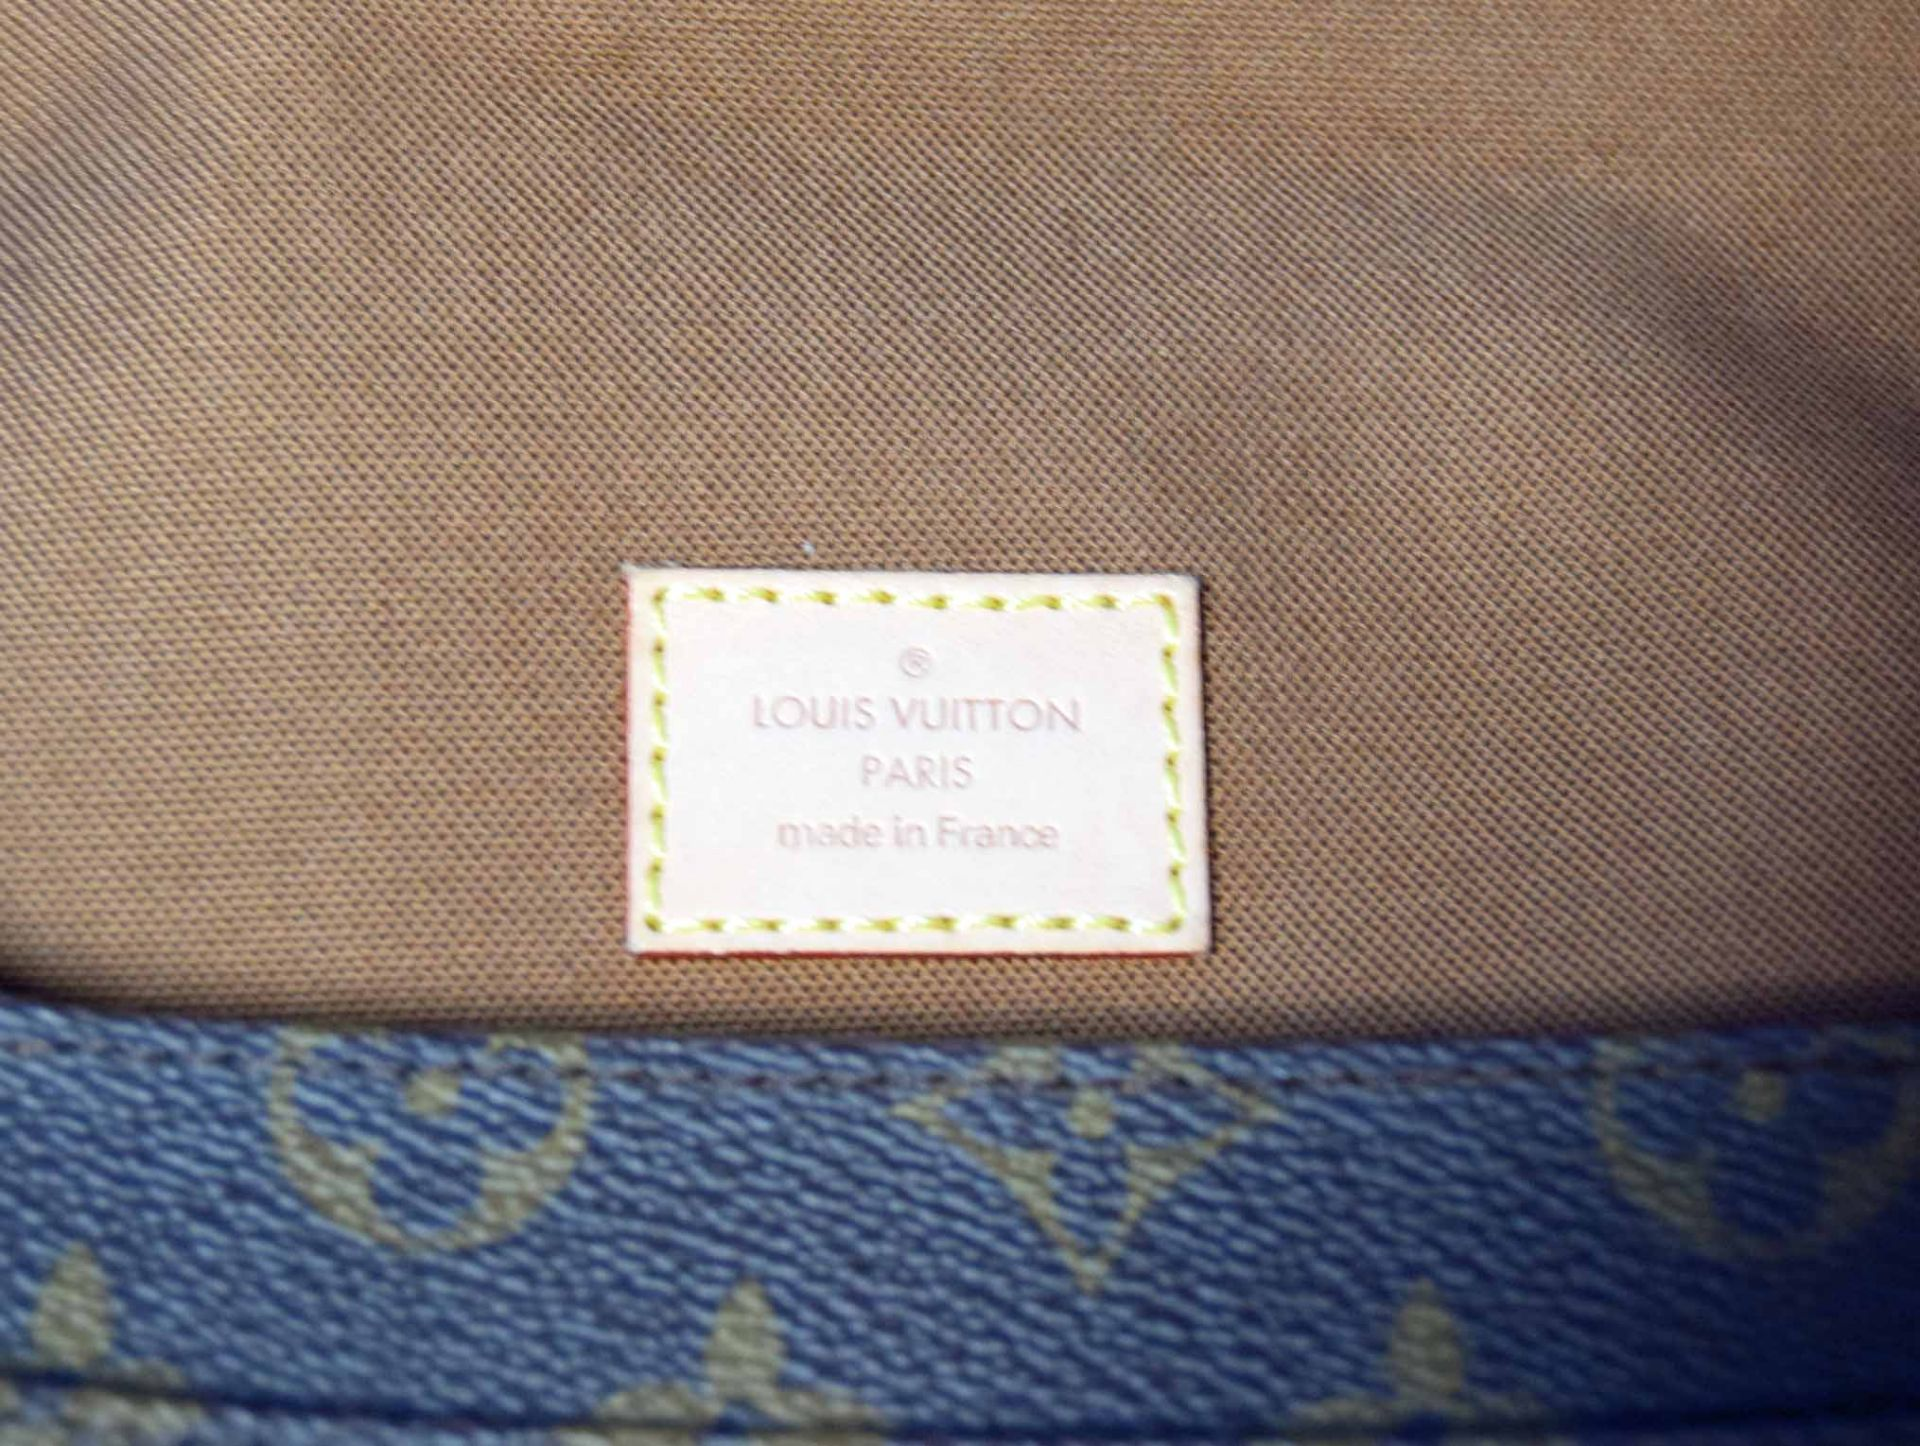 A LOUIS VUITTON Messenger Bosphore Cross Body Shoulder Bag in Chocolate Brown/Camel Leather with - Image 7 of 7